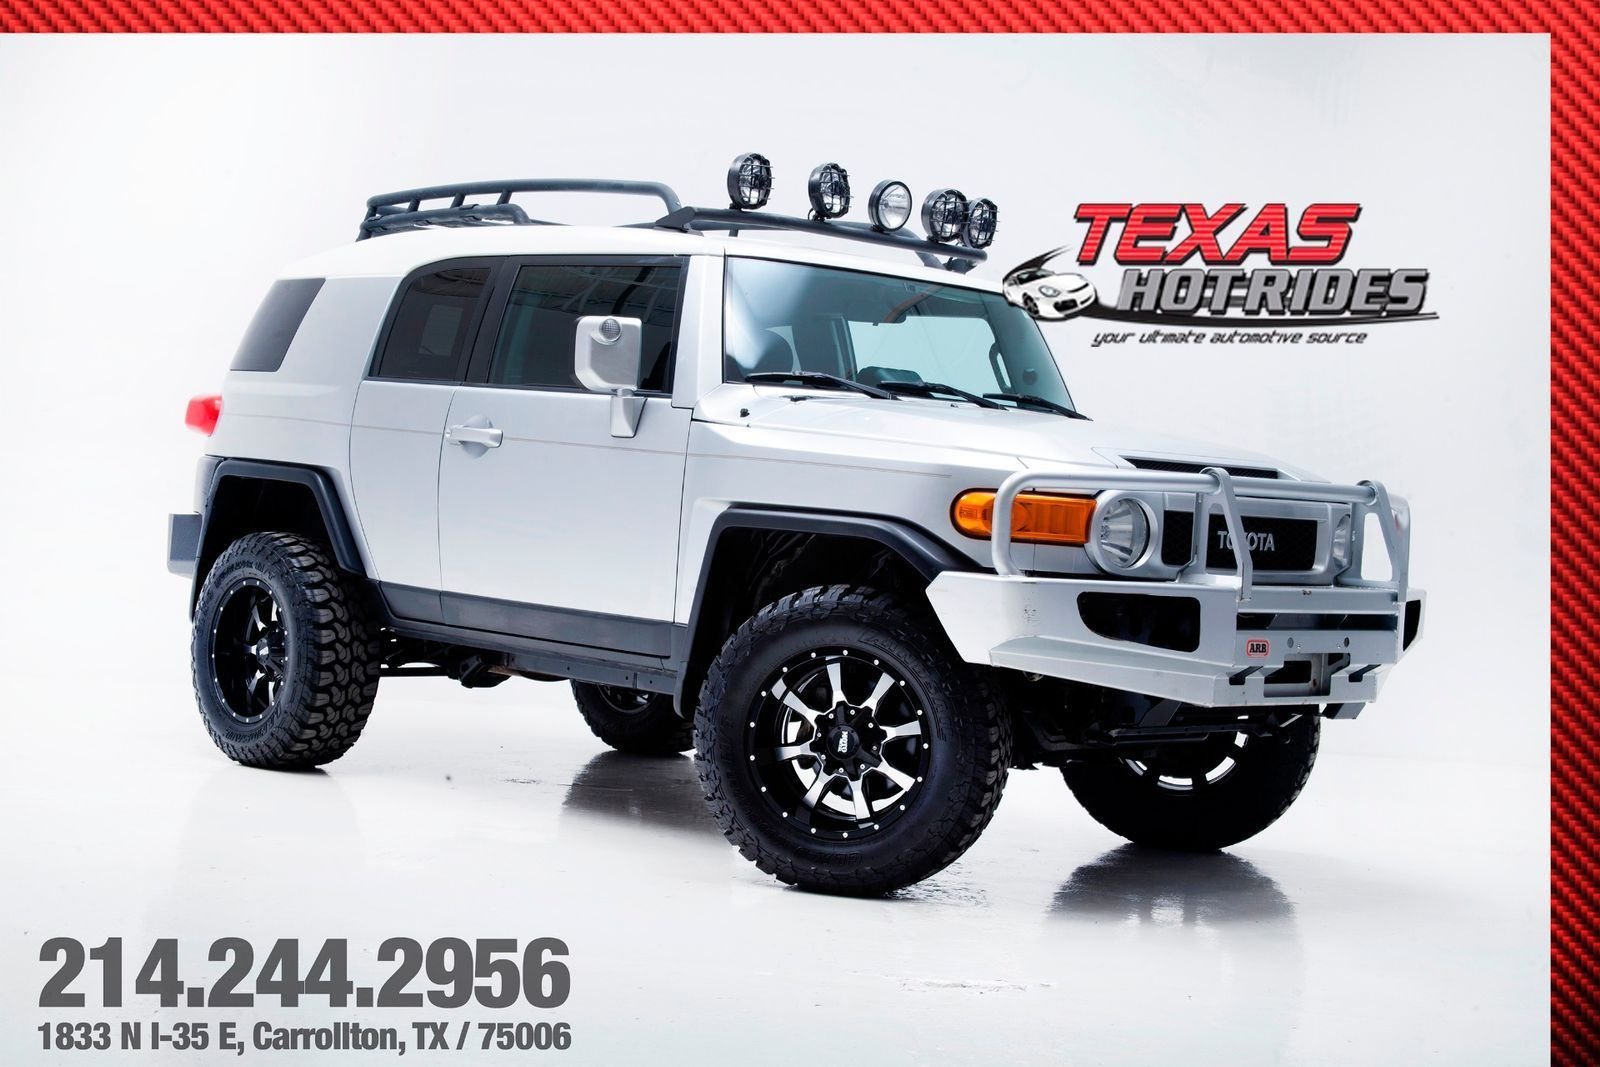 Cool Toyota 2017: 2007 Toyota FJ Cruiser 4X4 Lifted With Upgrades 2007  Toyota FJ Cruiser SUV 4X4 Lifted With Upgrades! Check more at ...